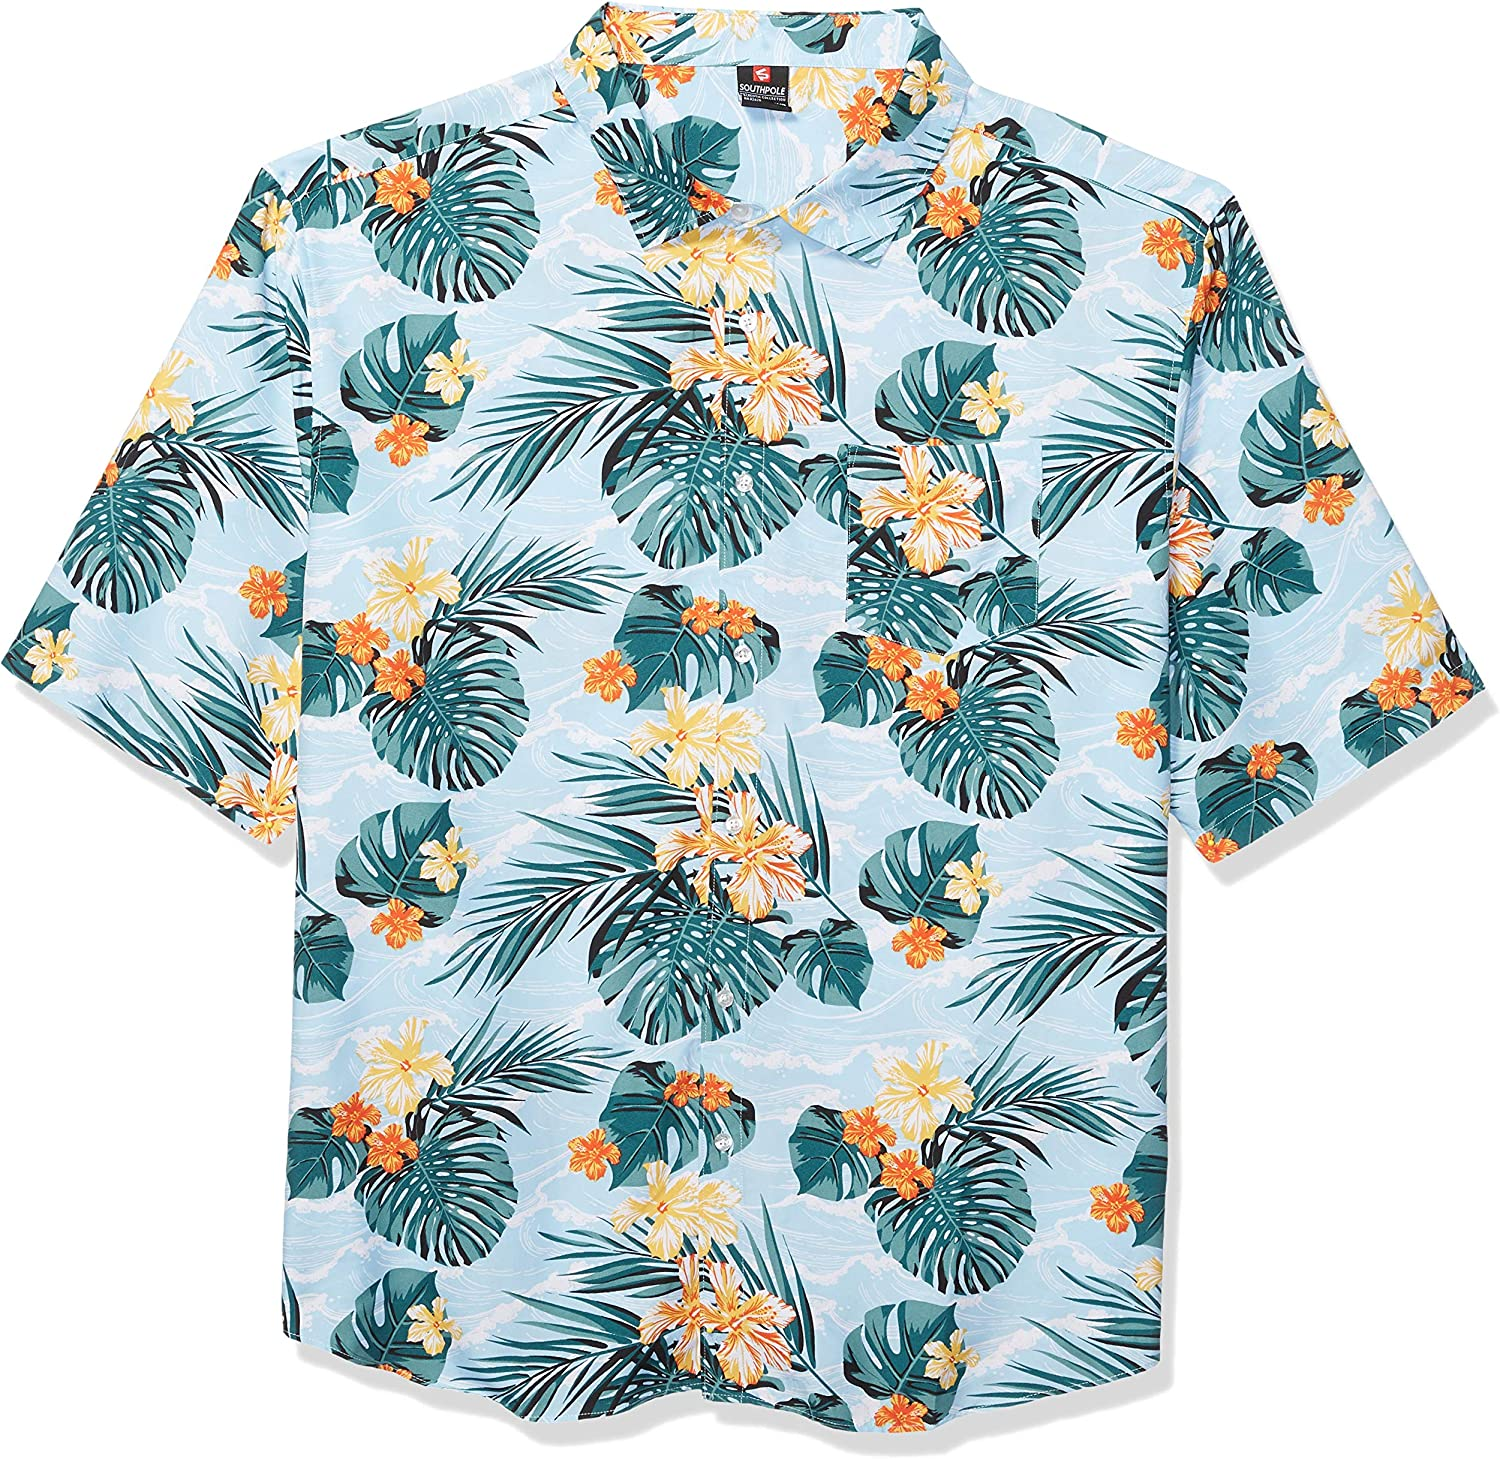 Southpole Men's All Over Print Woven Shirt